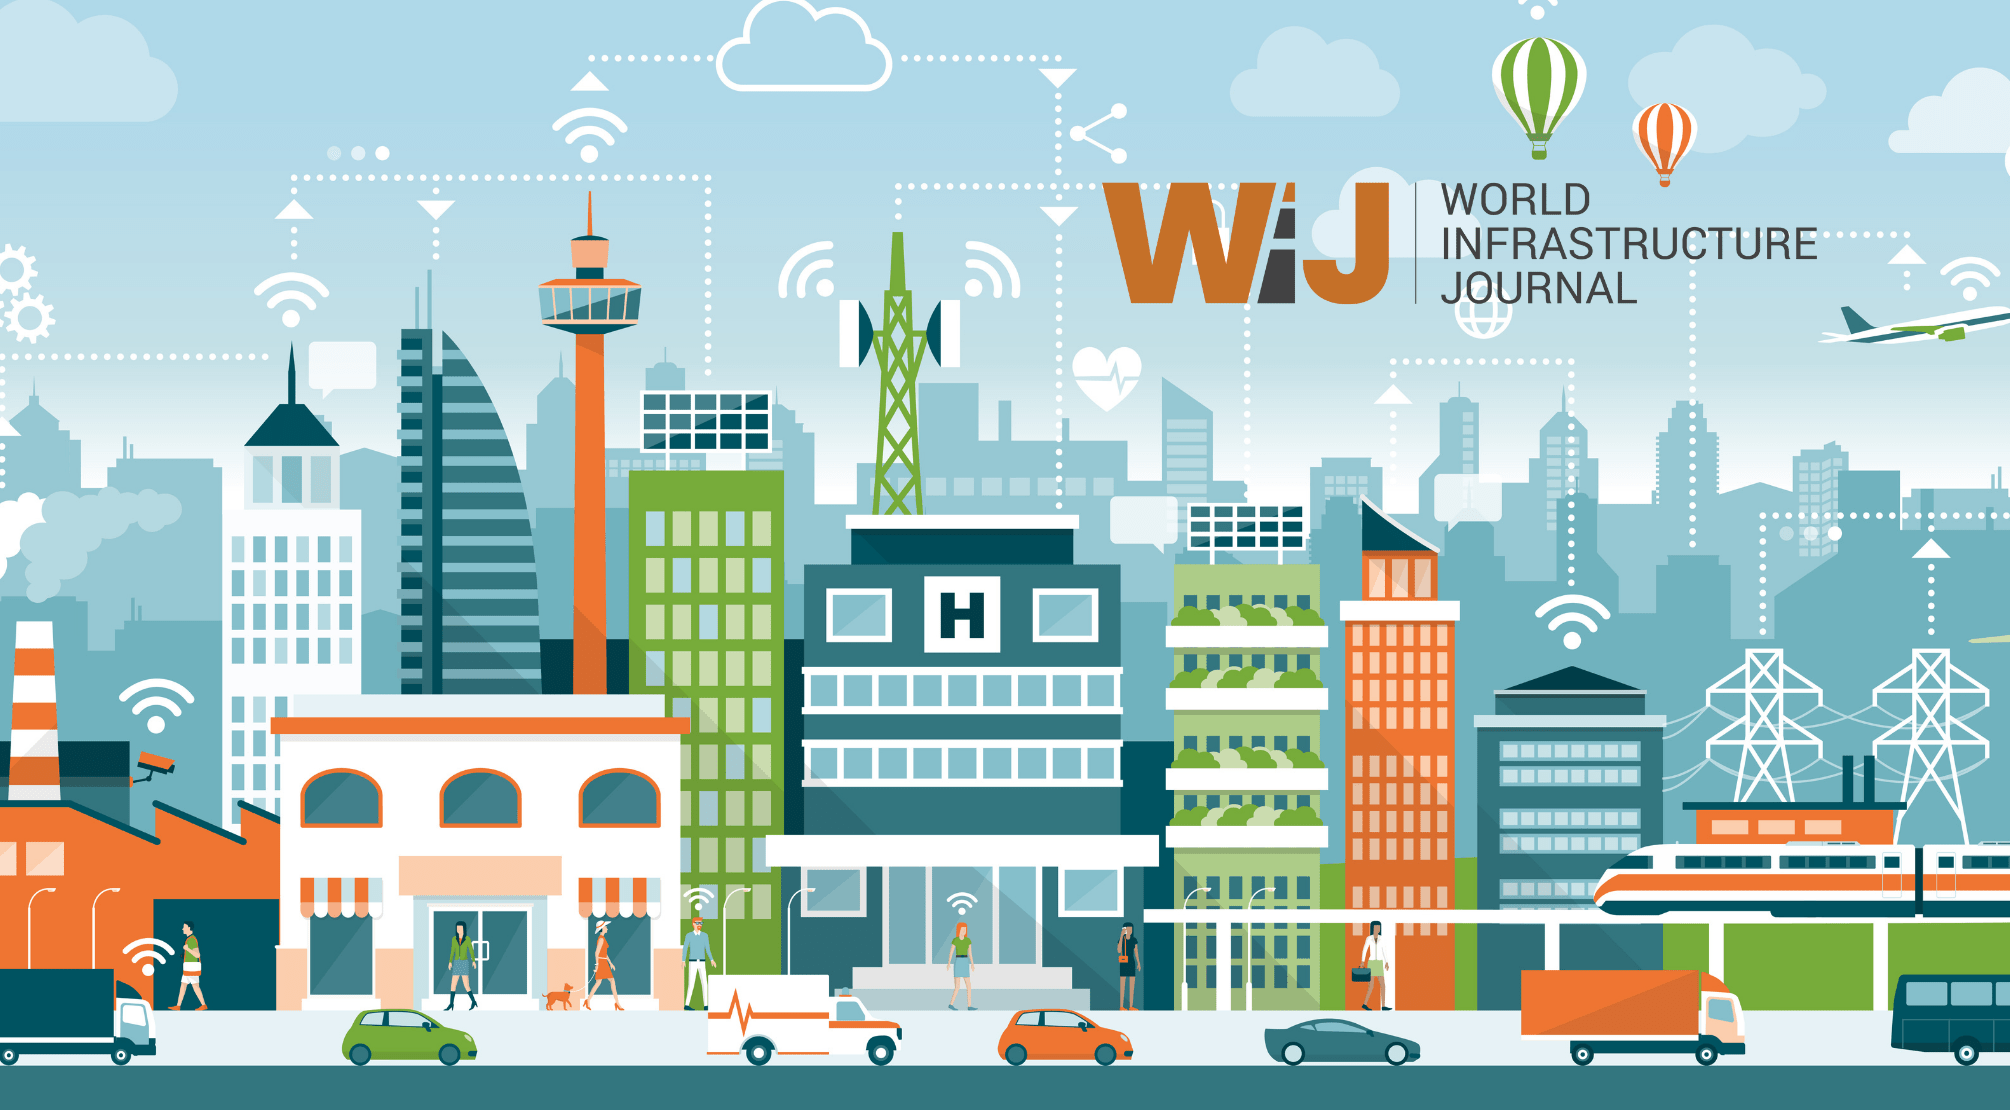 Make Smart Cities Secure: Policy solutions needed to deal with growing cybersecurity concerns